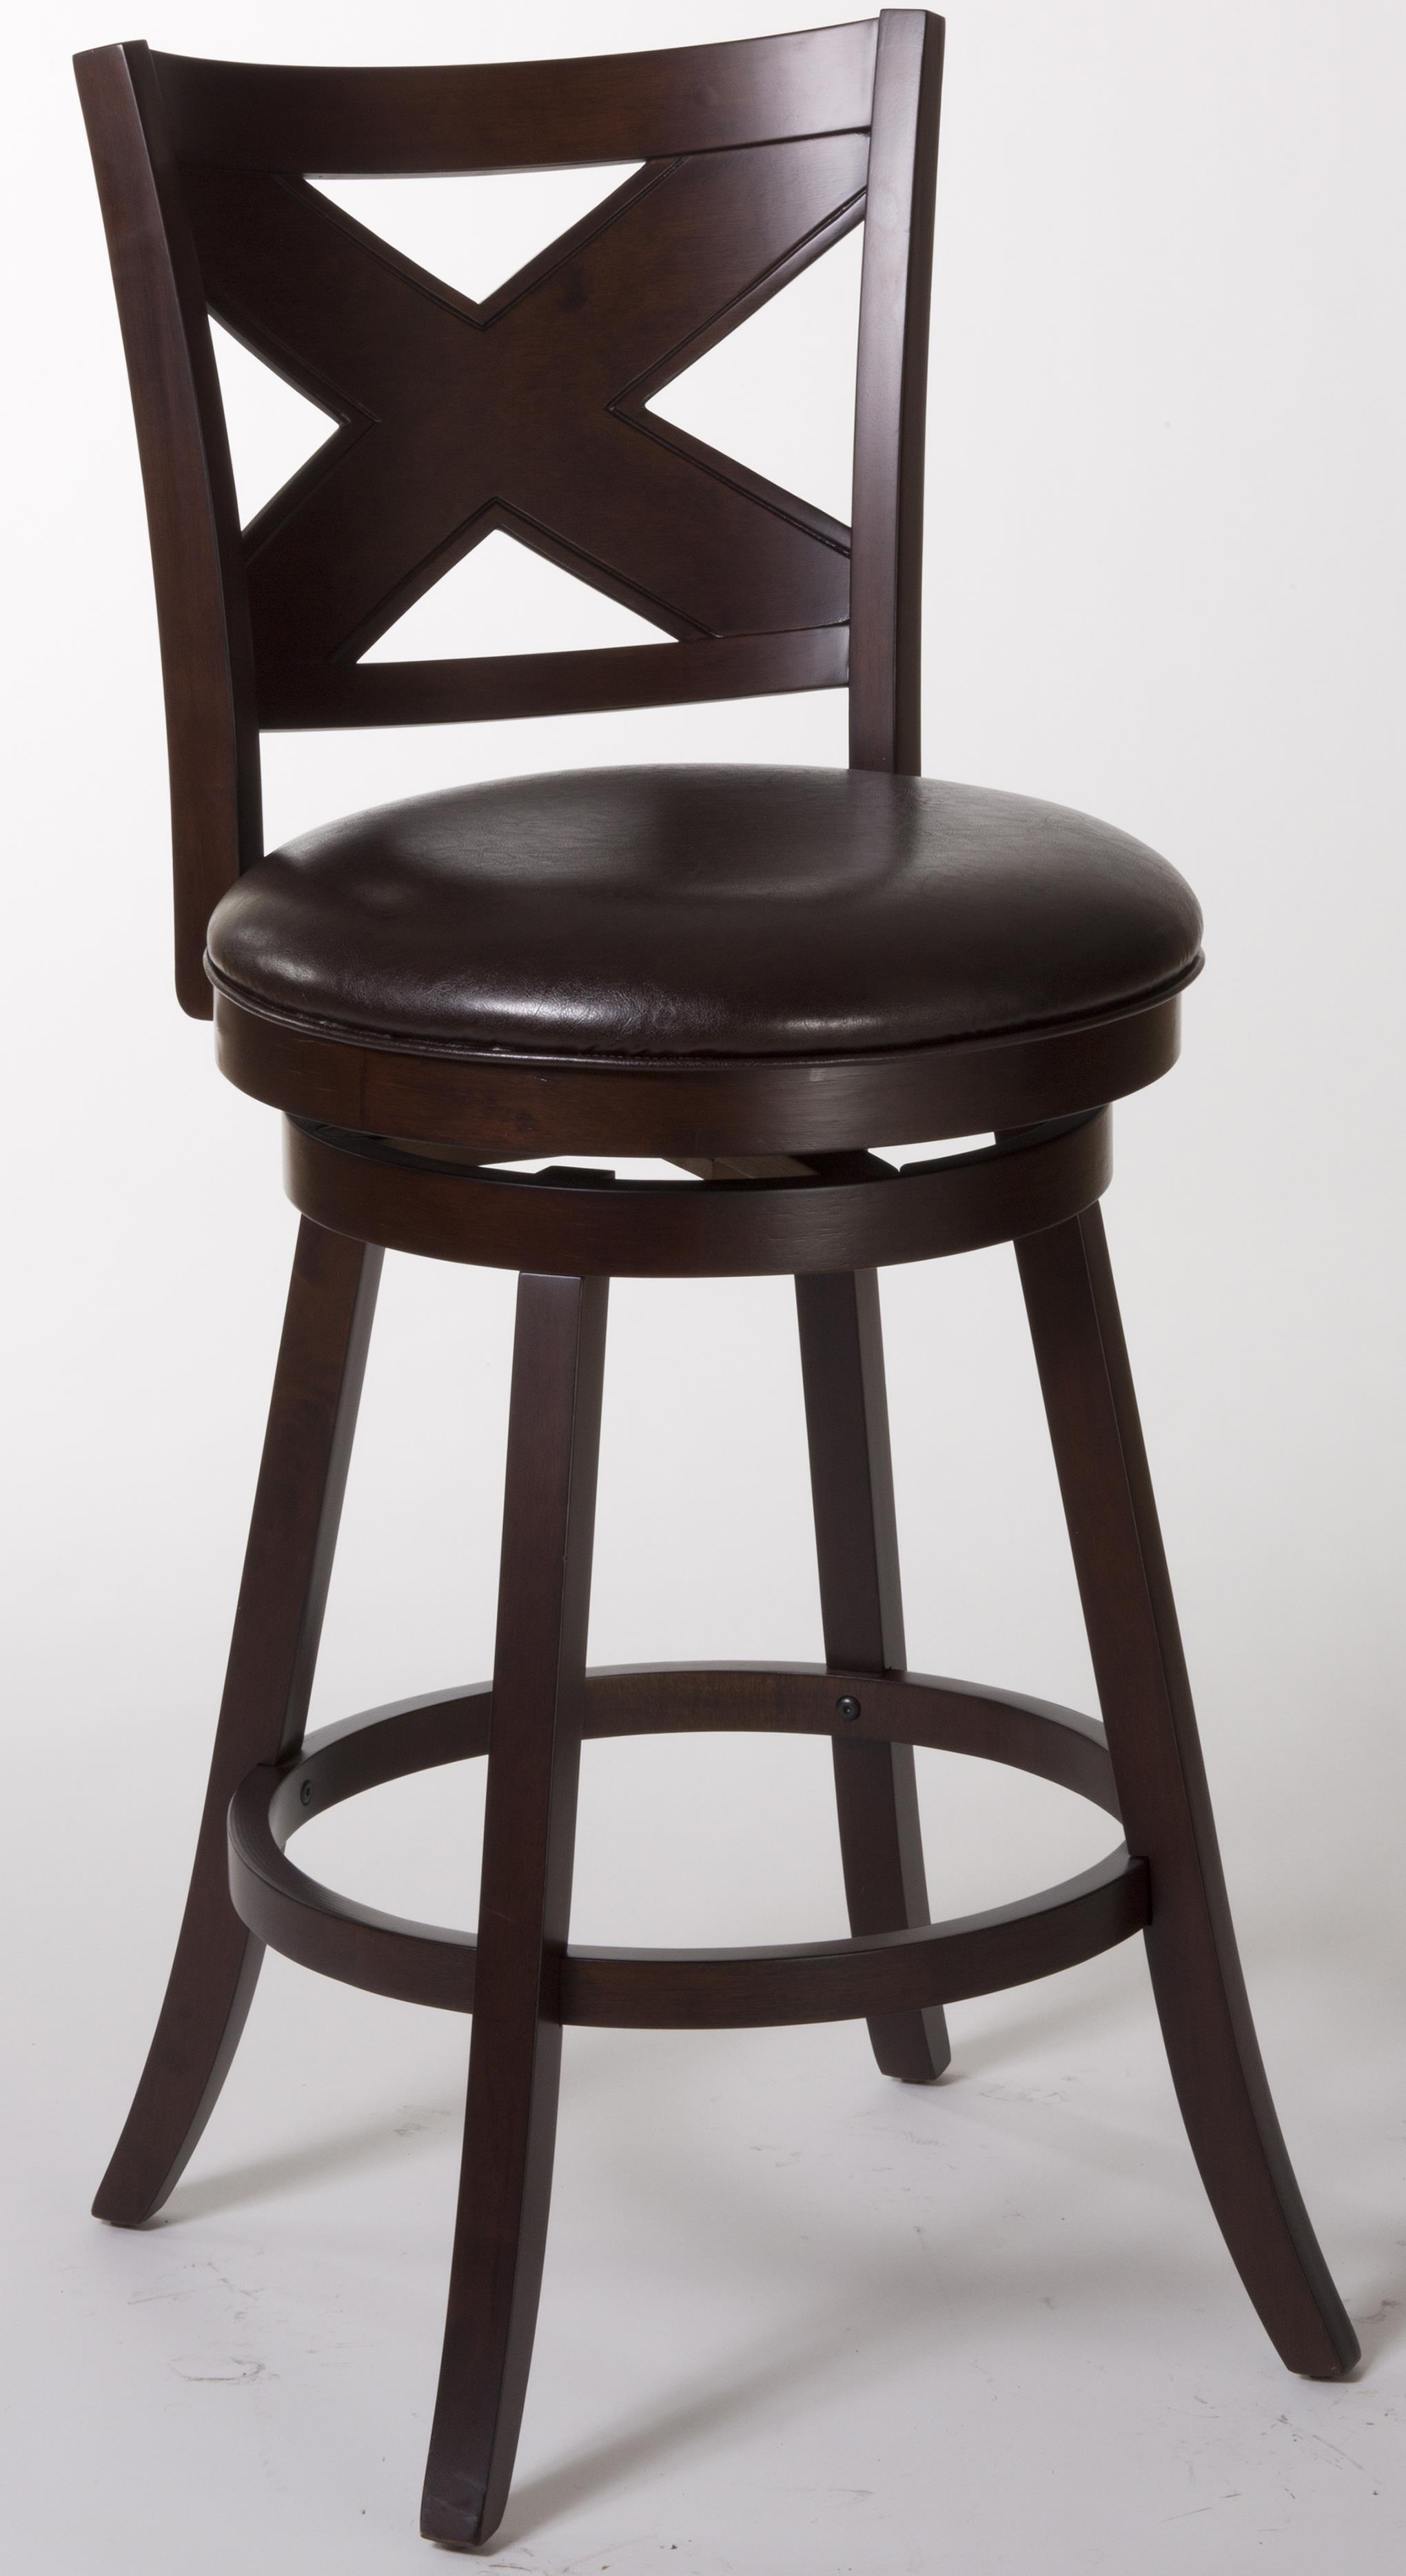 Hillsdale Wood Stools Ashbrook Bar stool - Item Number: 5209-830